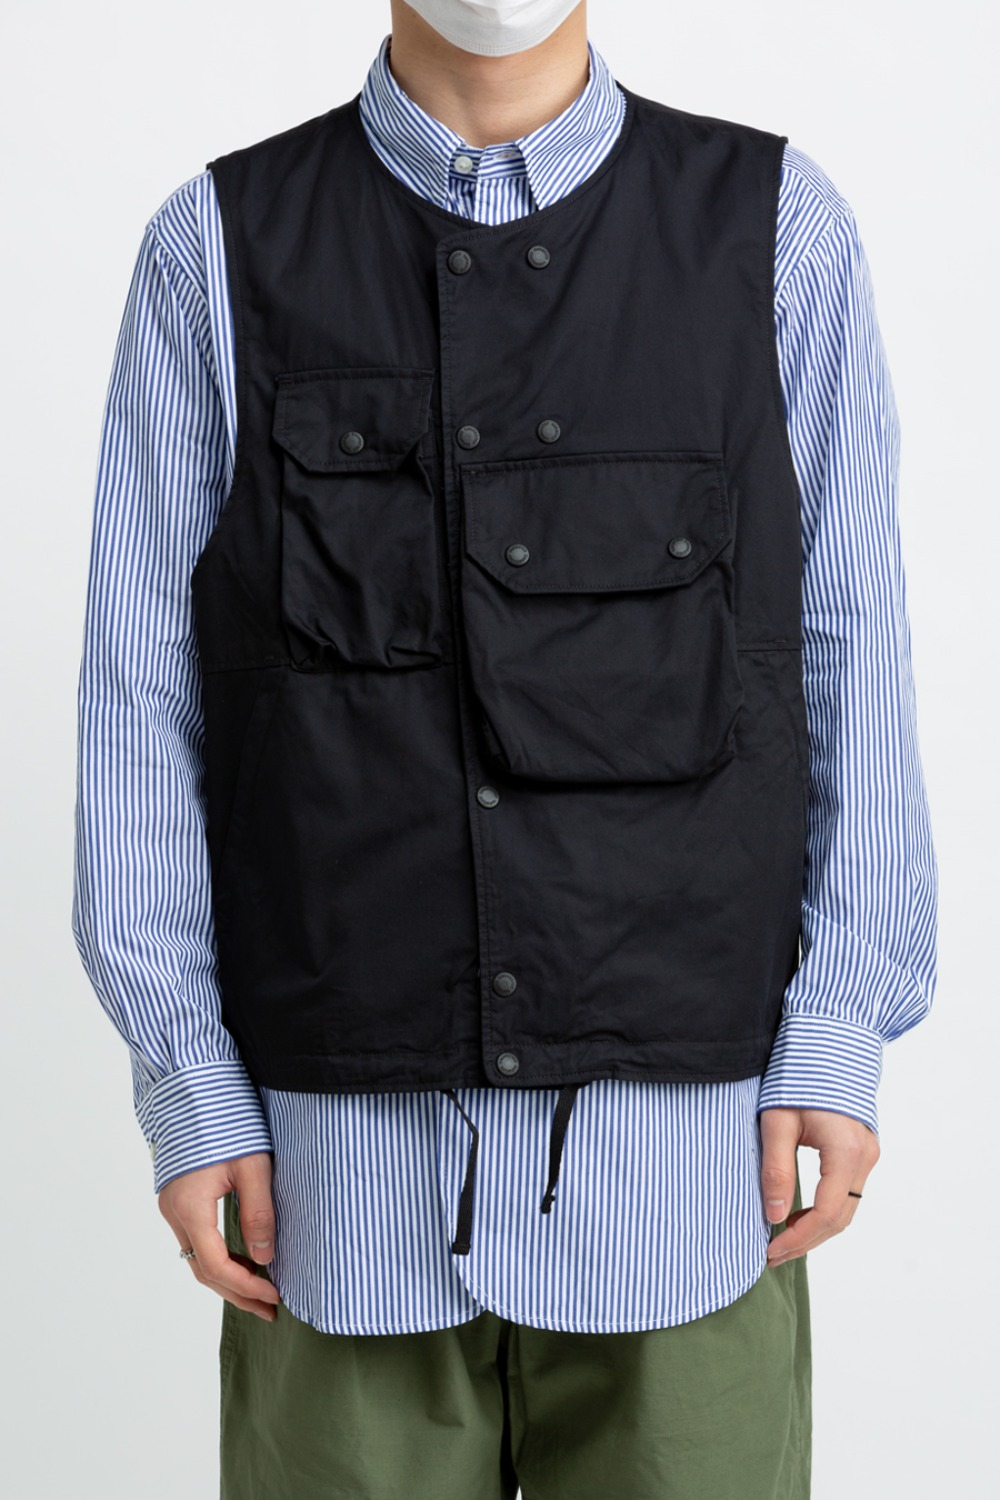 COVER VEST BLACK HIGH COUNT TWILL